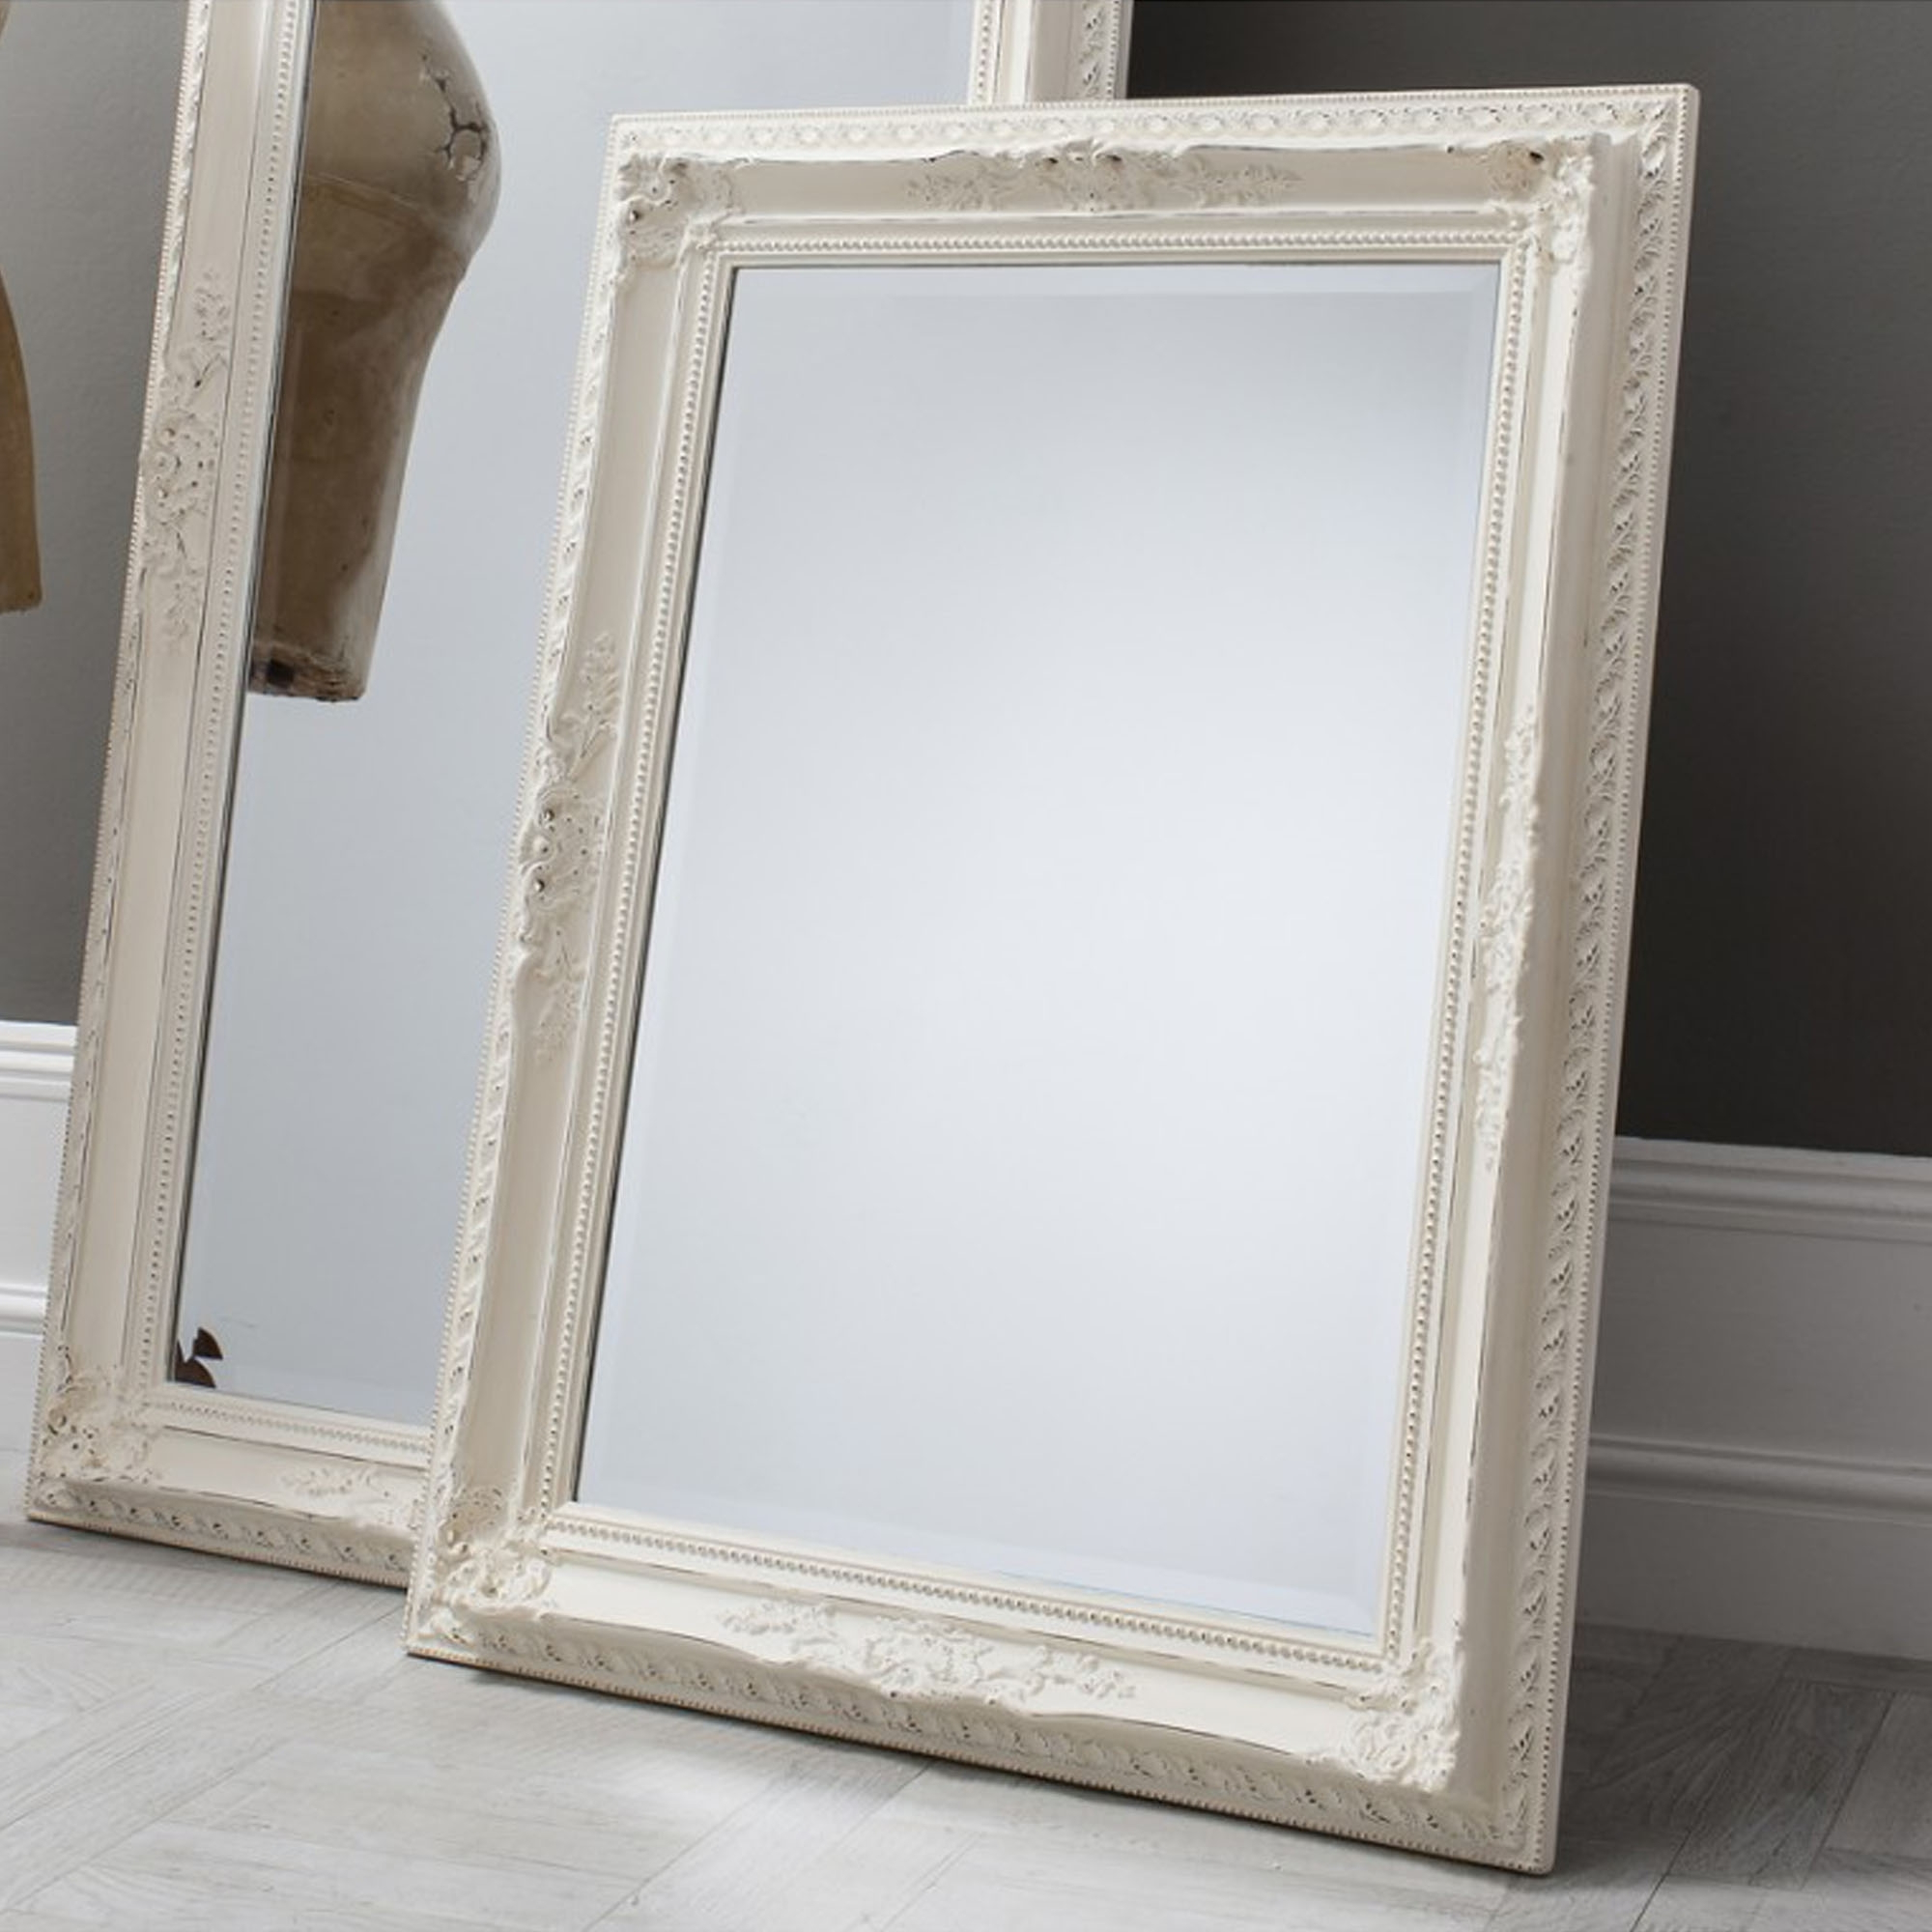 Small Antique French Style White Buckingham Wall Mirror Throughout Current Small Antique Wall Mirrors (View 9 of 20)